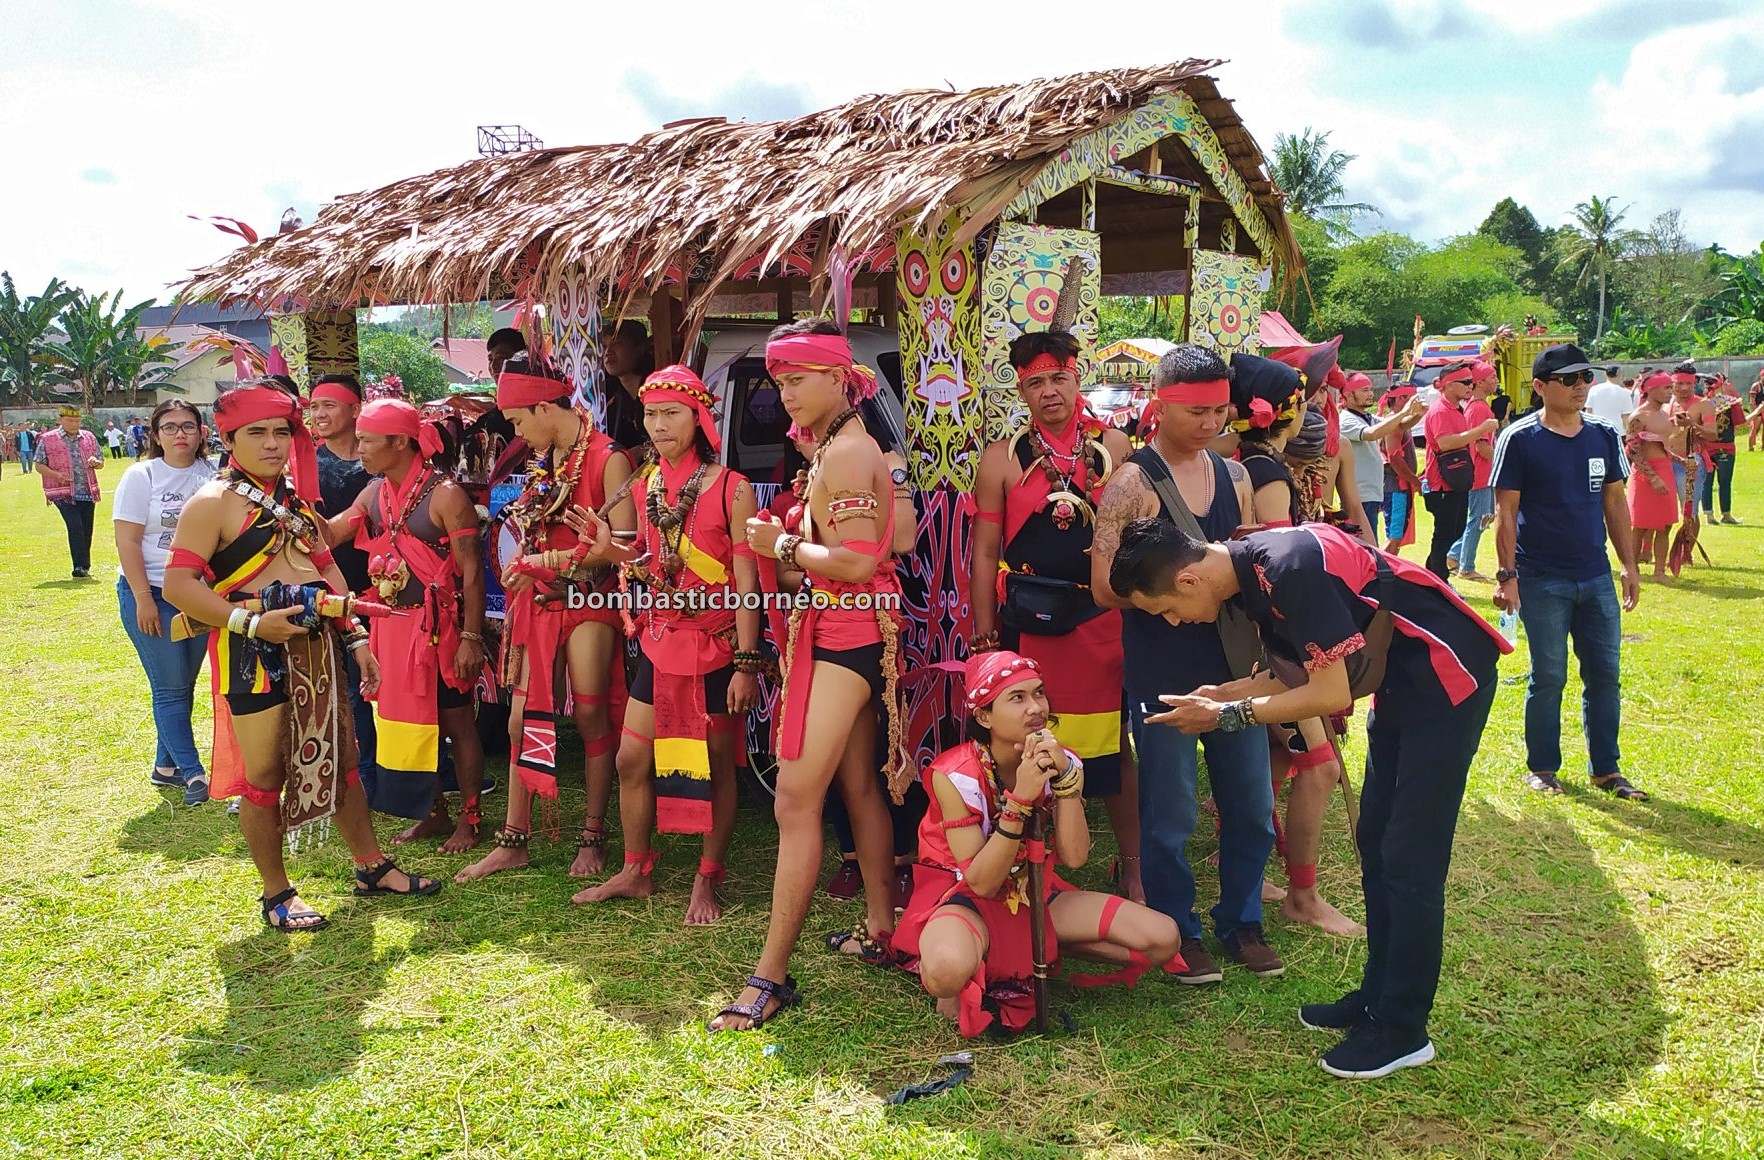 indigenous, traditional, Ethnic, native, tribe, Indonesia, West Kalimantan, Tangkitn Dayak, backpackers, Obyek wisata, travel guide, Borneo, 印尼西加里曼丹, 婆罗洲达雅文化, 孟加映土著部落